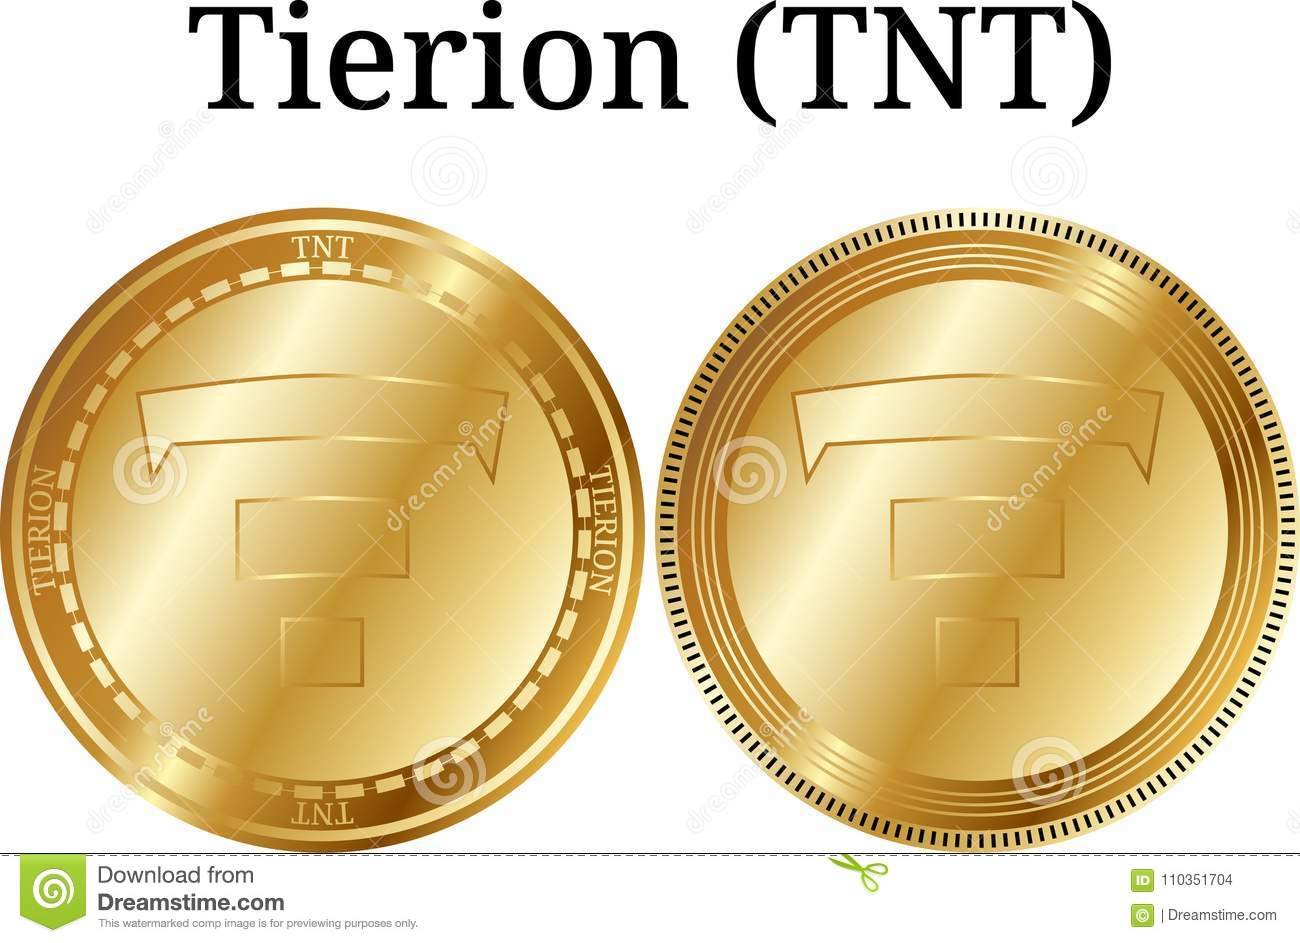 where to buy tnt cryptocurrency